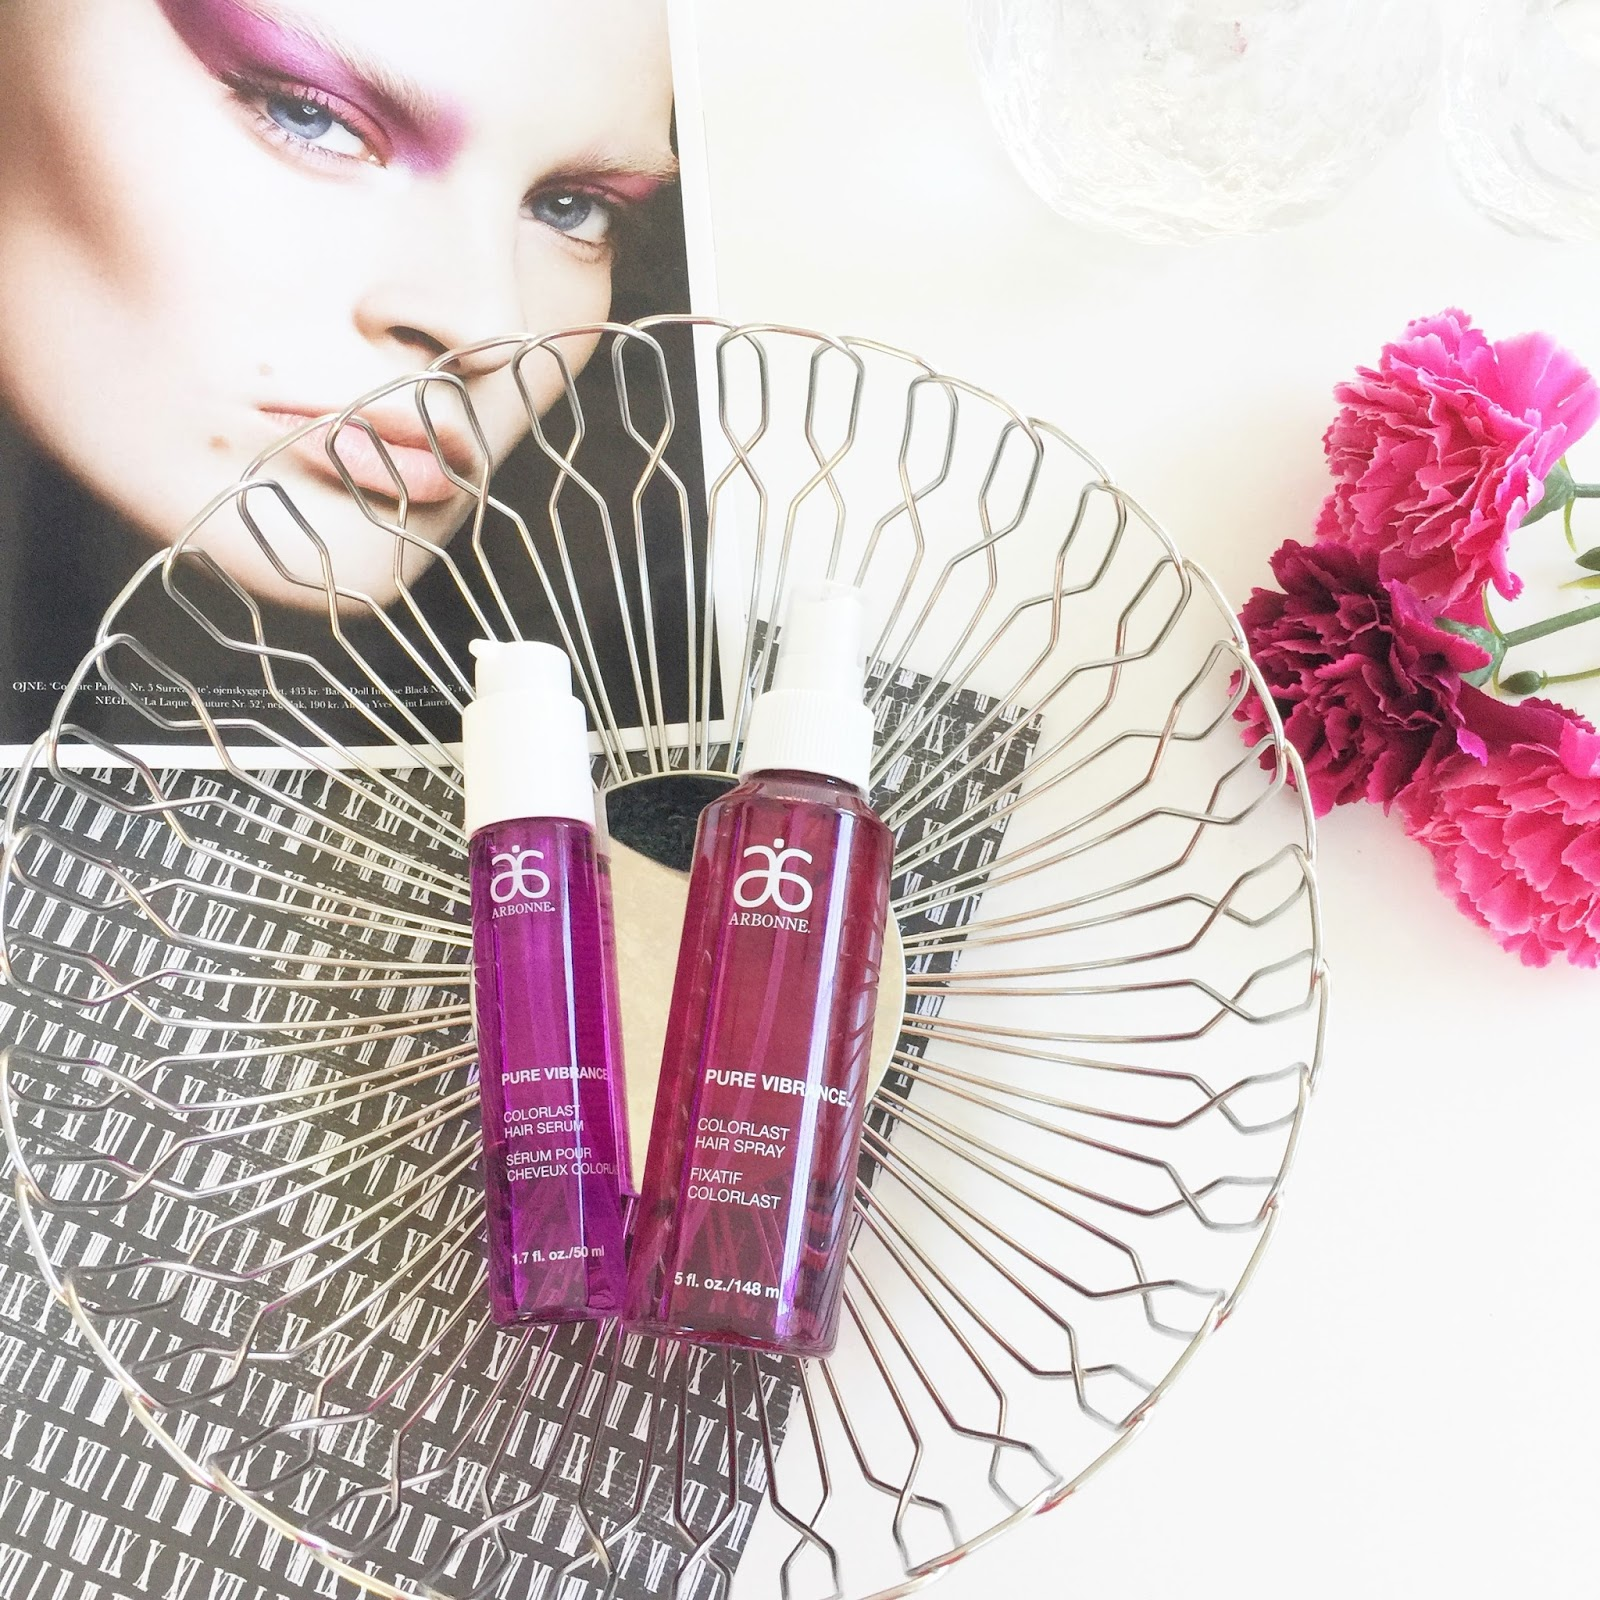 PRODUCT REVIEW: ARBONNE PURE VIBRANCE COLORLAST SERUM AND